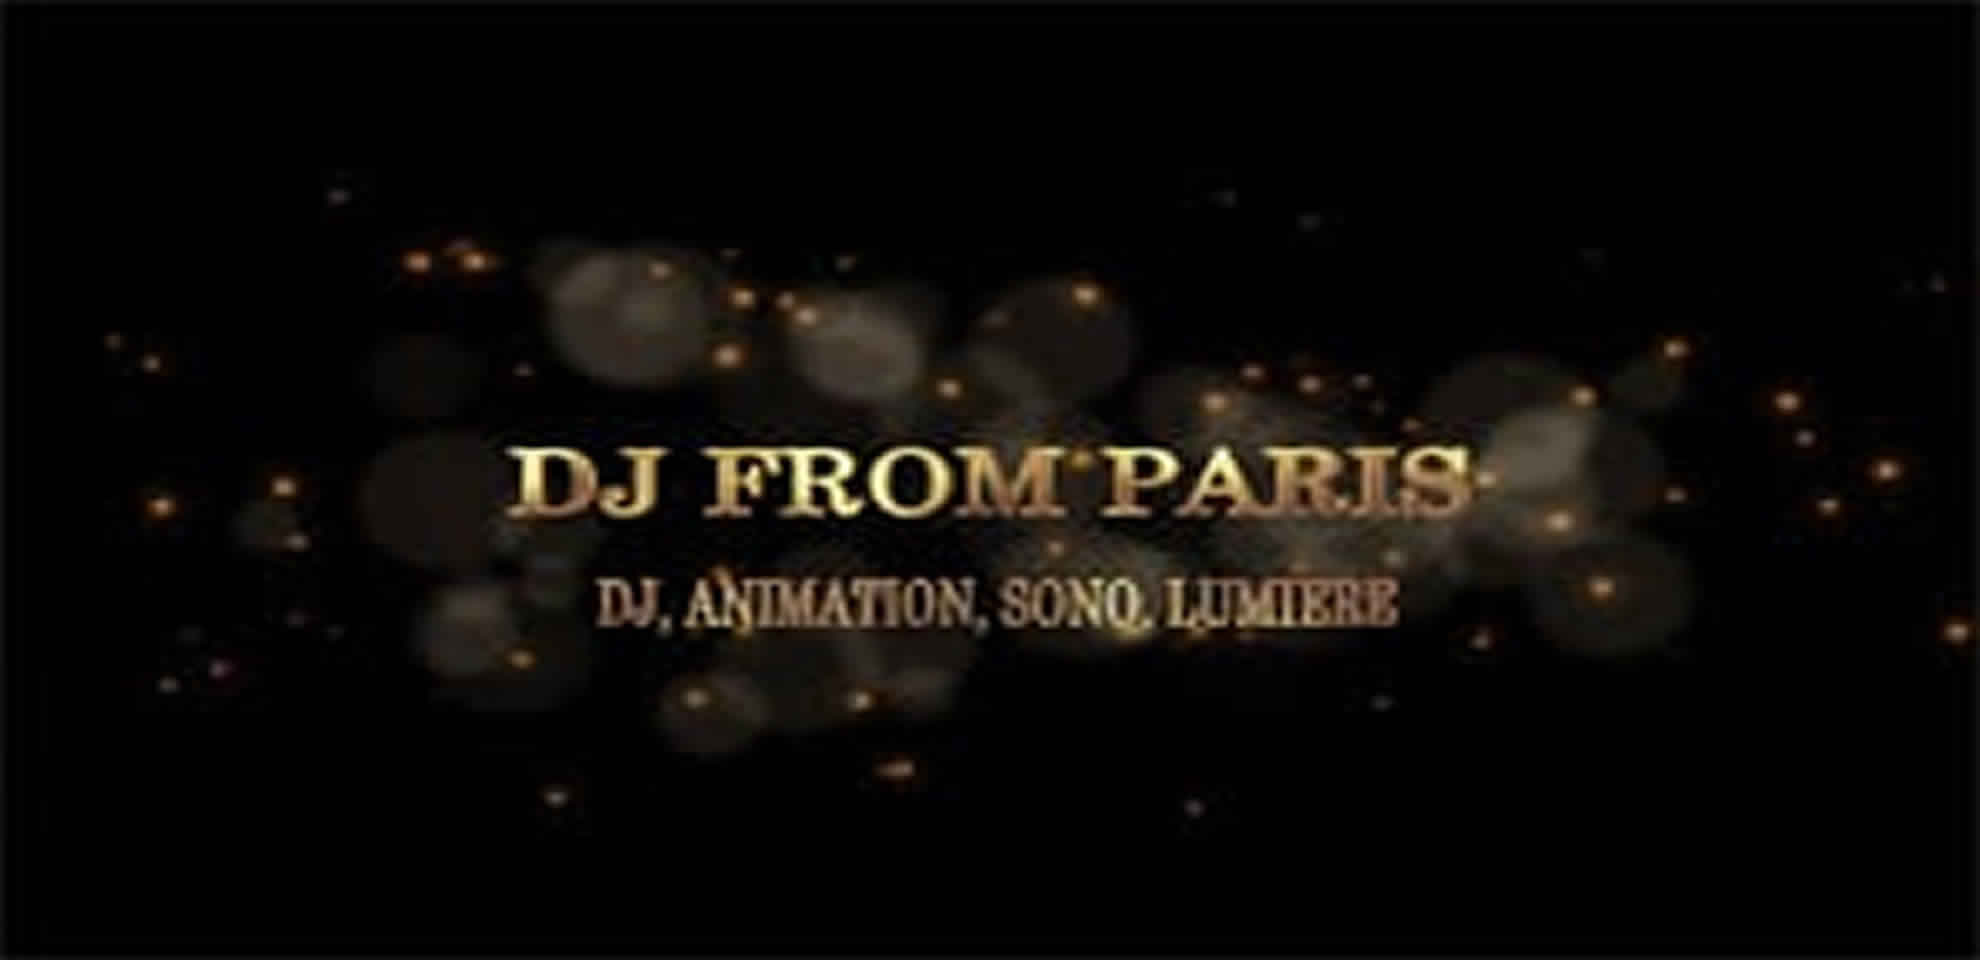 DJ FROM PARIS